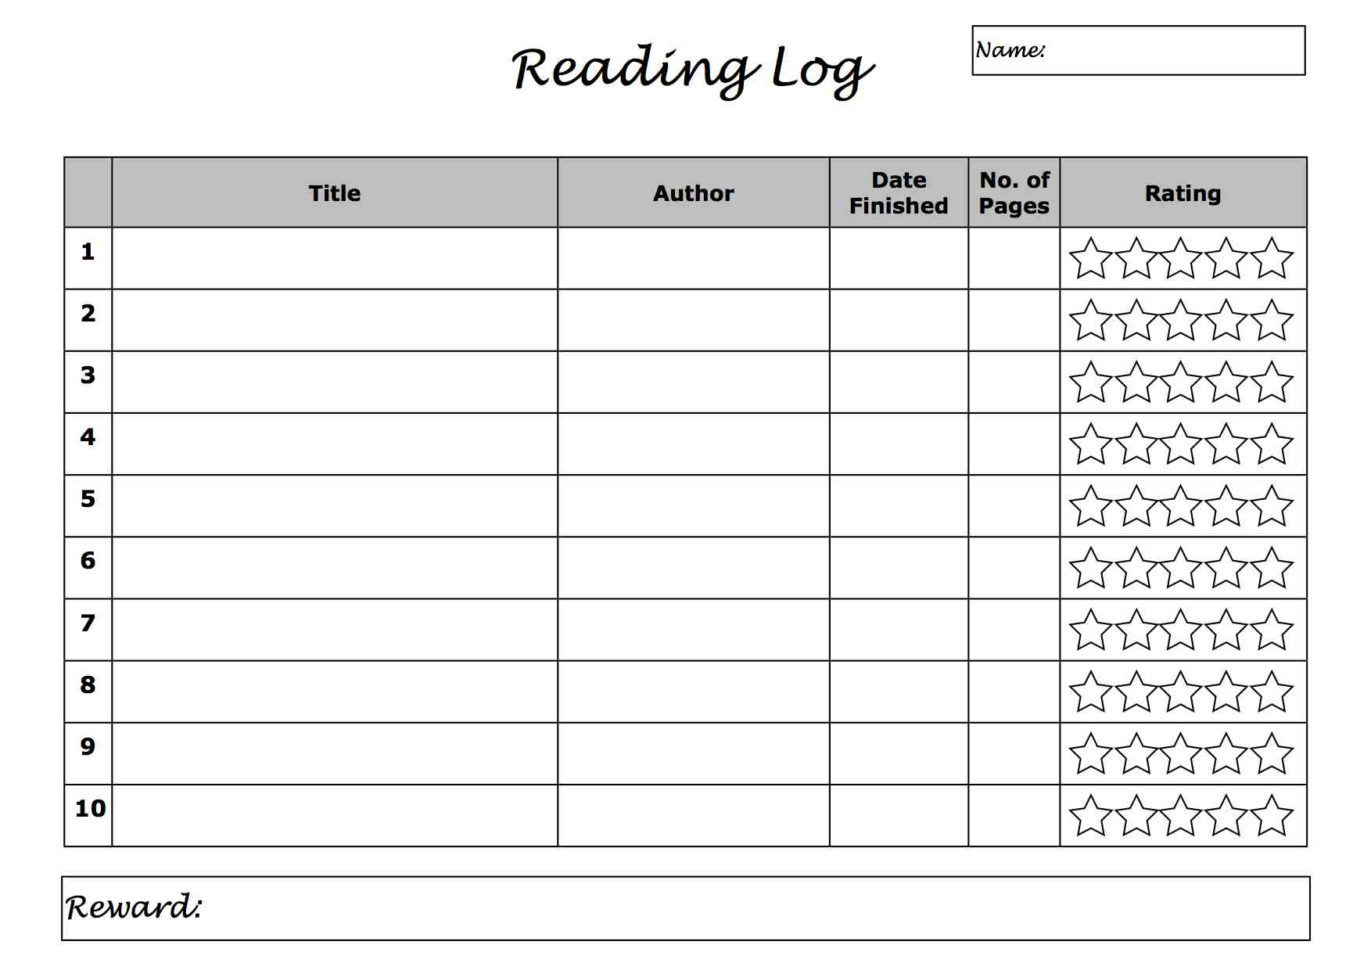 Reading Log Spreadsheet Spreadshee Reading Log